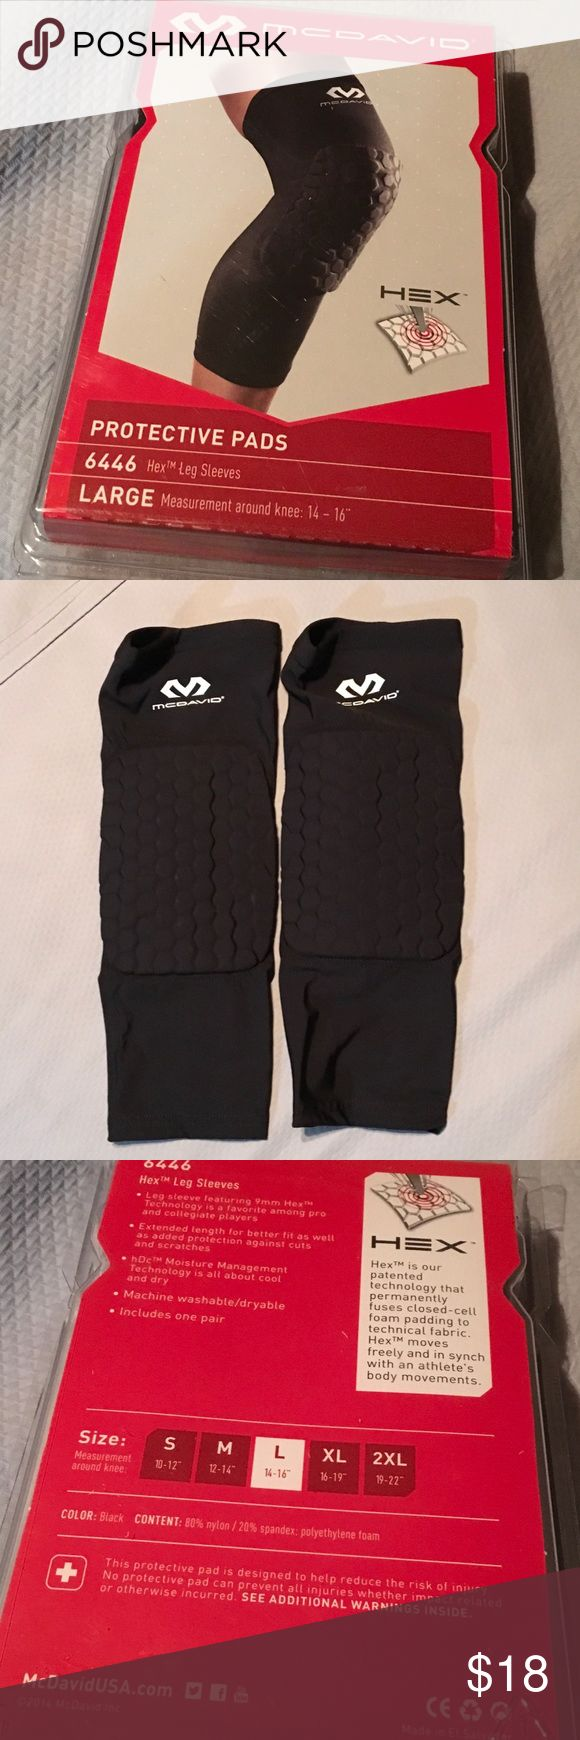 NWOT MCDAVID Protective Leg Sleeves Brand New MCDAVID protective pads.   Leg sleeves size large.   See pictures for sizing chart.   Great for Basketball.     Priced to sell...this is an outstanding price for these. MCDAVID Other